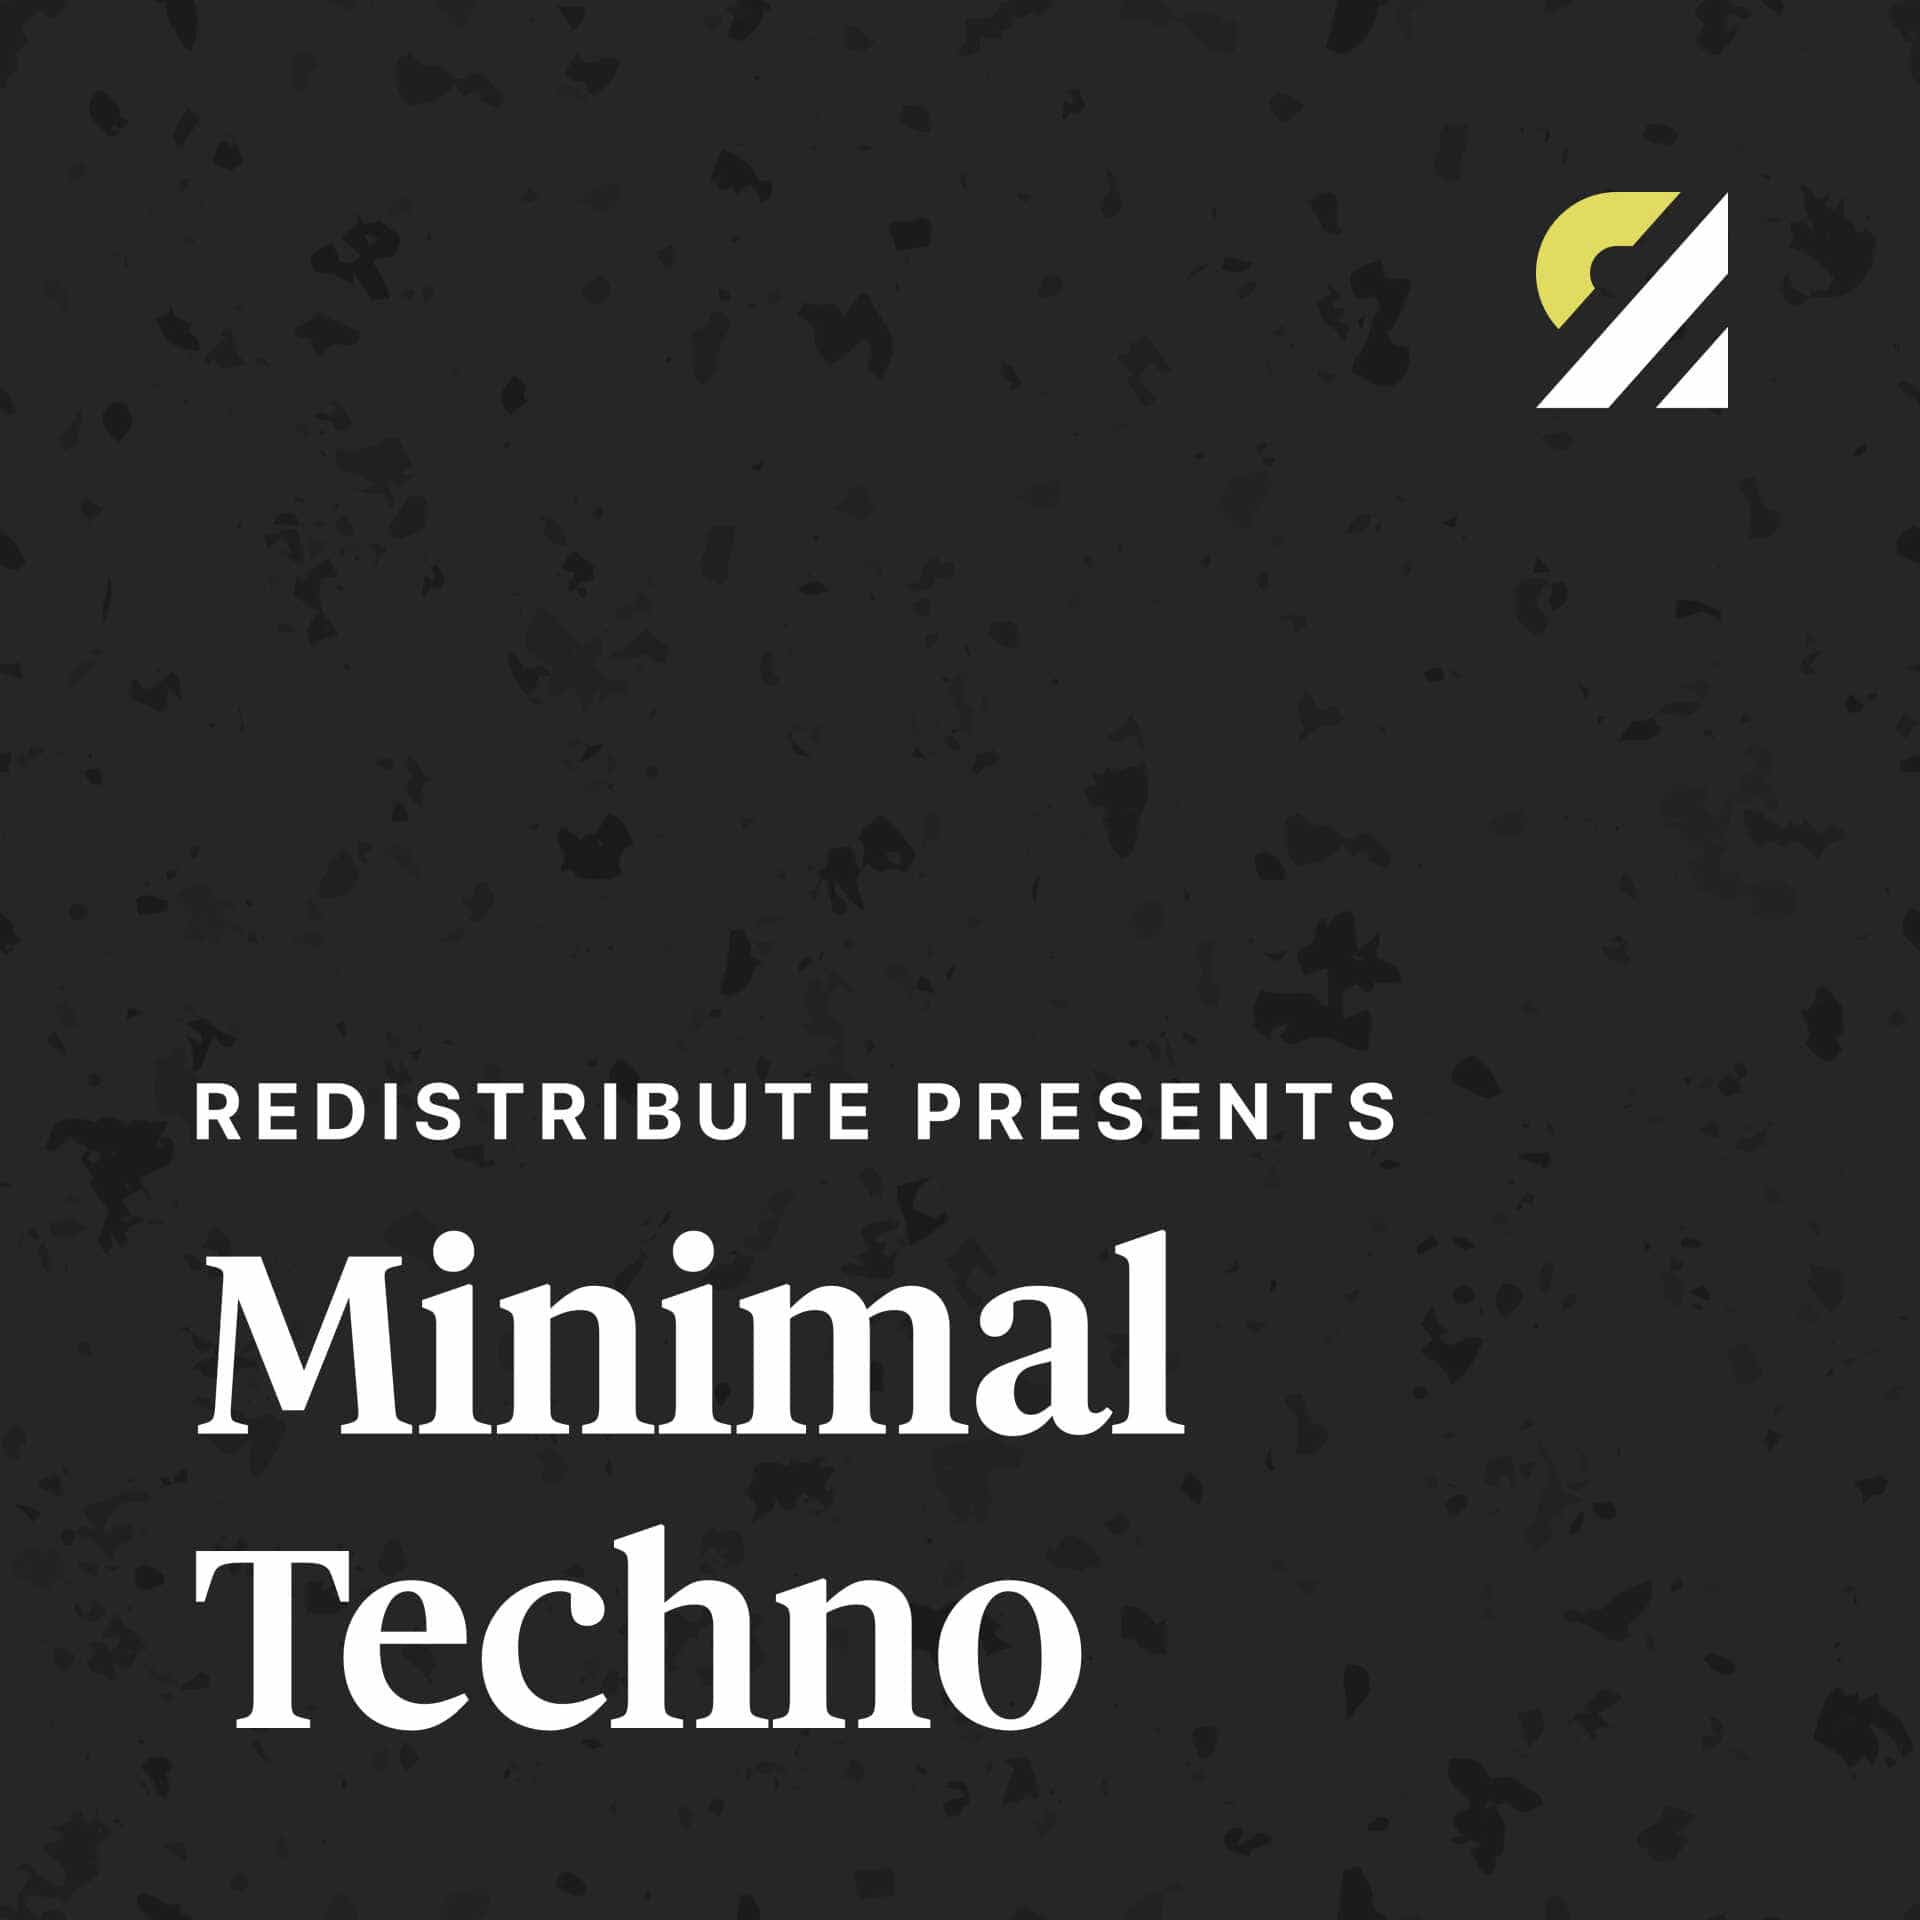 Cover image for the playlist Redistribute Presents Minimal Techno